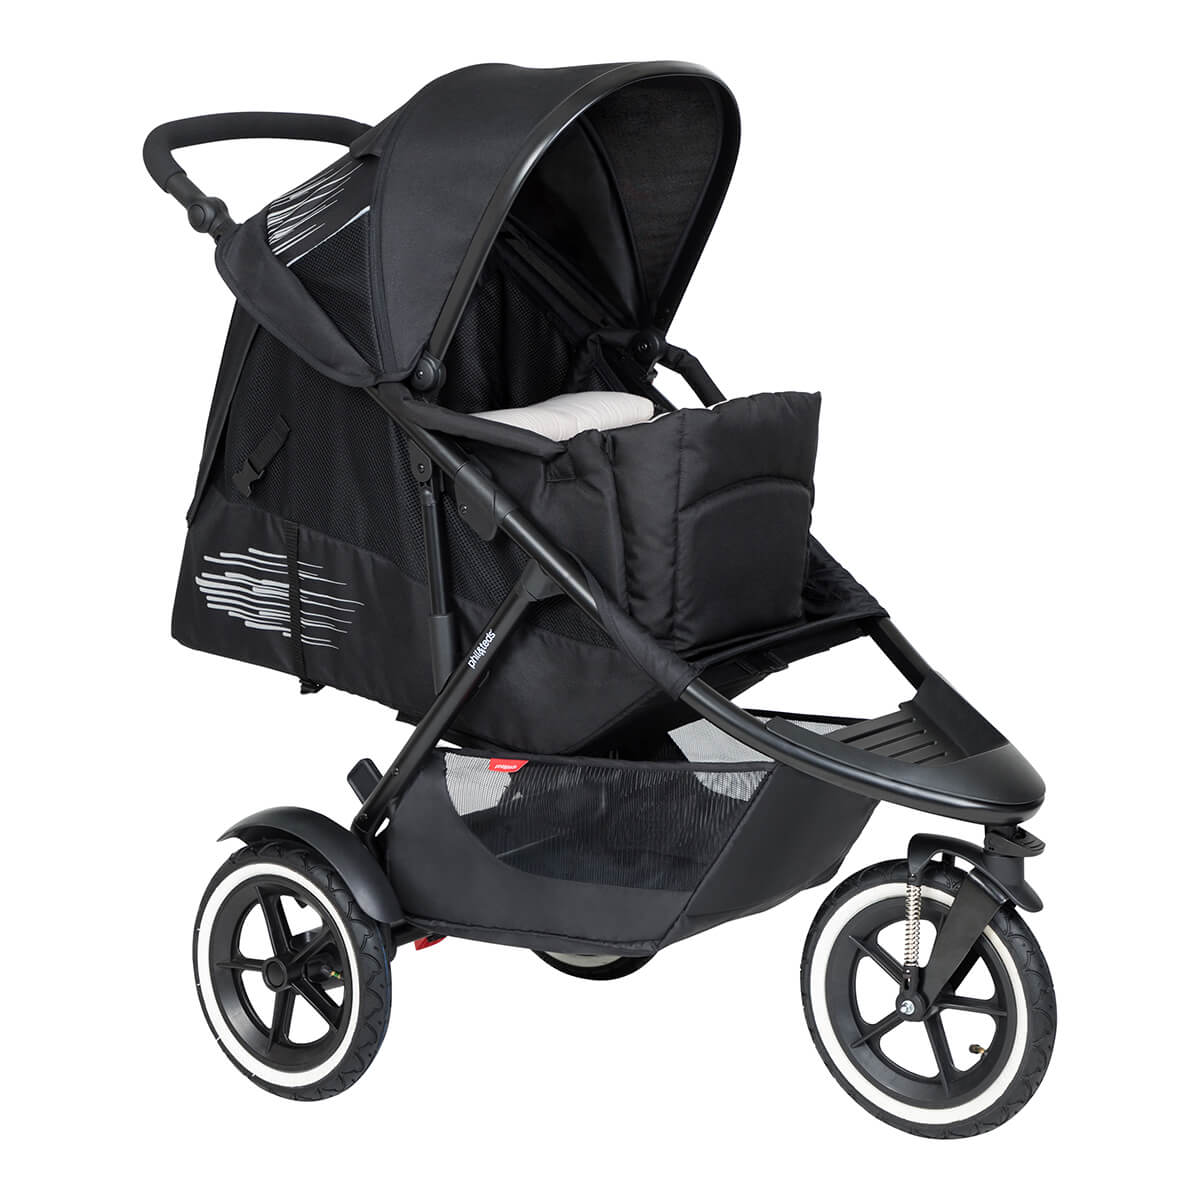 https://cdn.accentuate.io/4509901848653/19466203660482/philteds-sport-buggy-with-cocoon-full-recline-v1626485413660.jpg?1200x1200